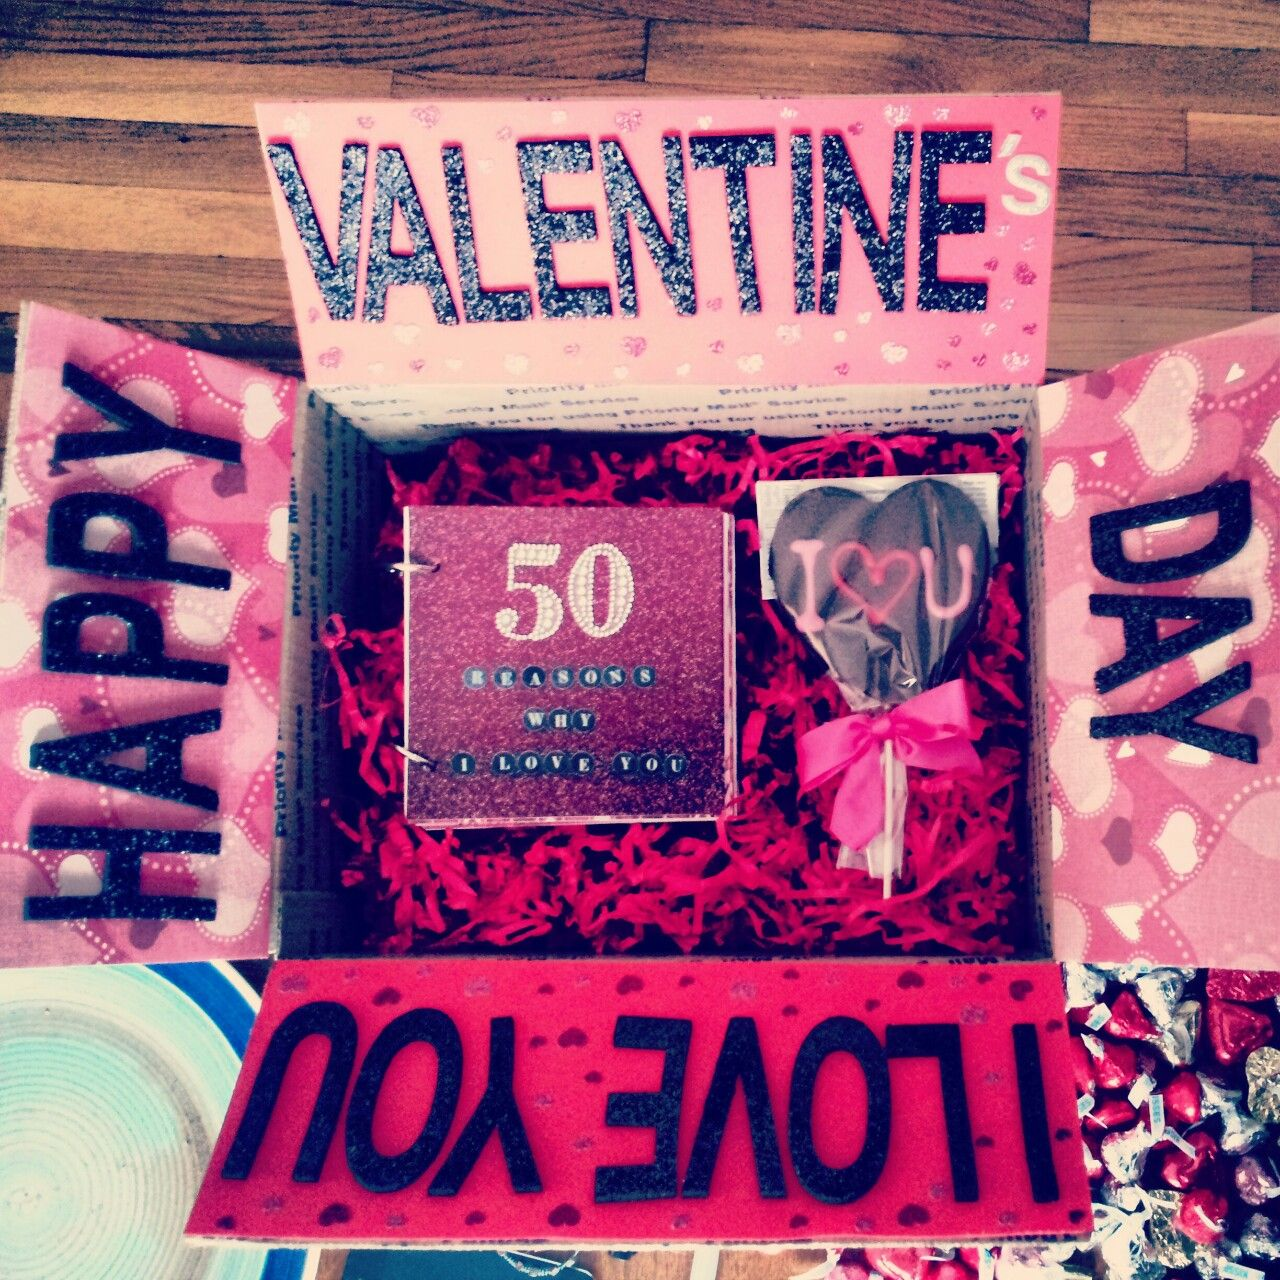 The Past Two Years I Had To Send My Valentine His Gifts In A Decked Out Box Overseas Think Want Keep Tradition Going Now That Hes Back Home